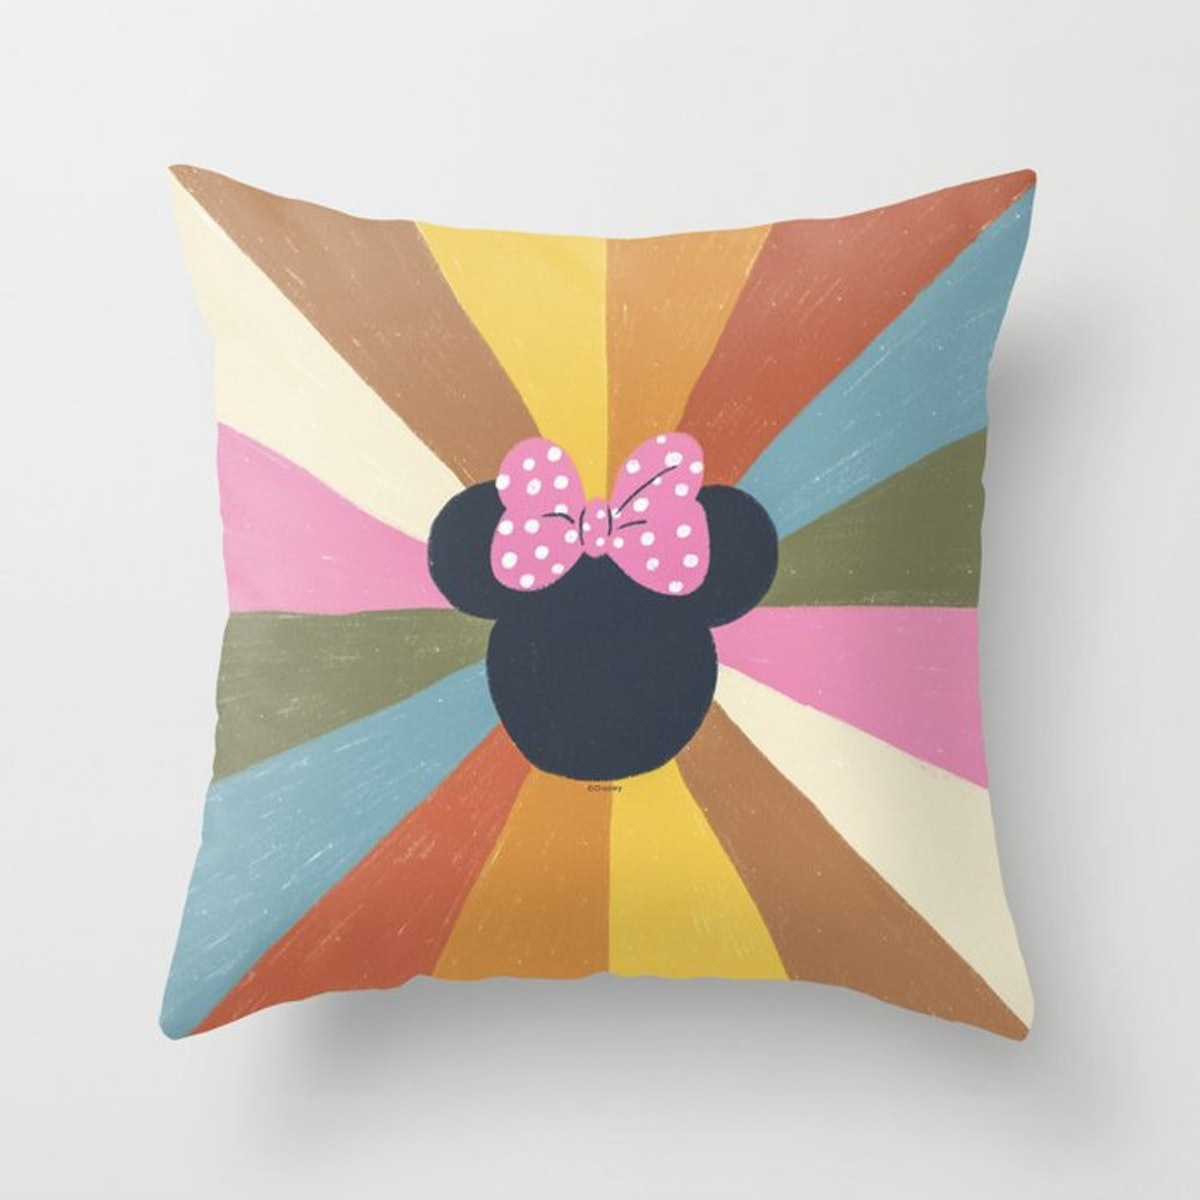 The Society6 Disney Minni Mouse collection has colorful throw pillows and other decor.